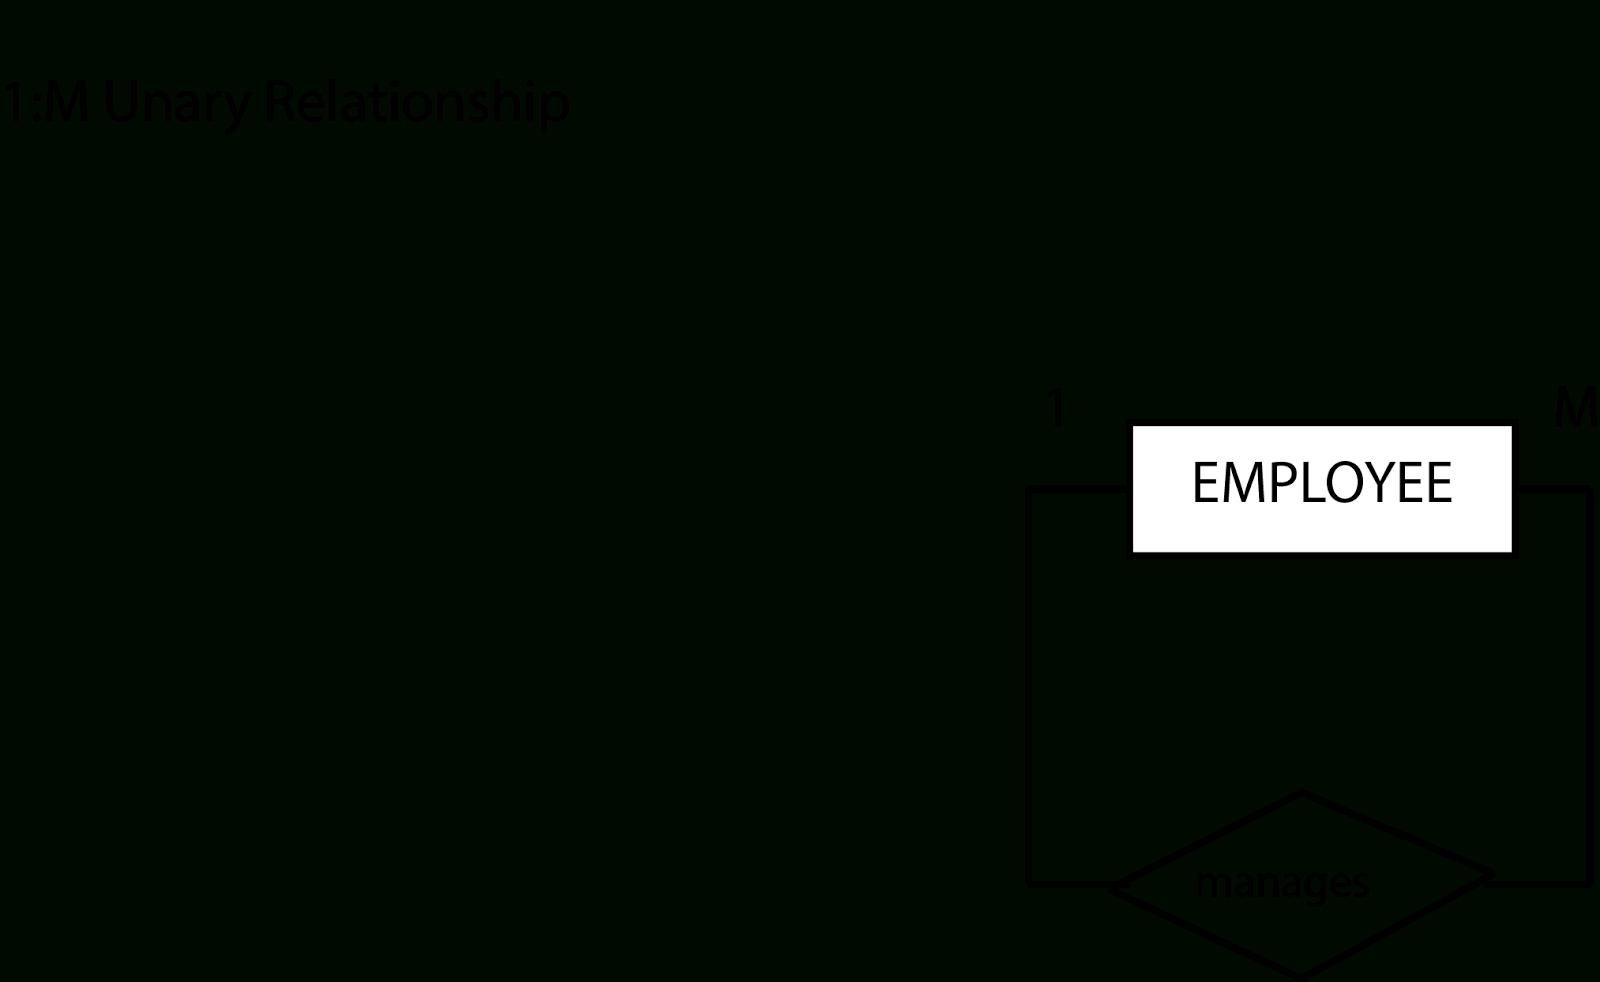 Week 5: Entity Relationship Diagram (Er Diagram) | Learning Journal within One To Many Er Diagram Examples